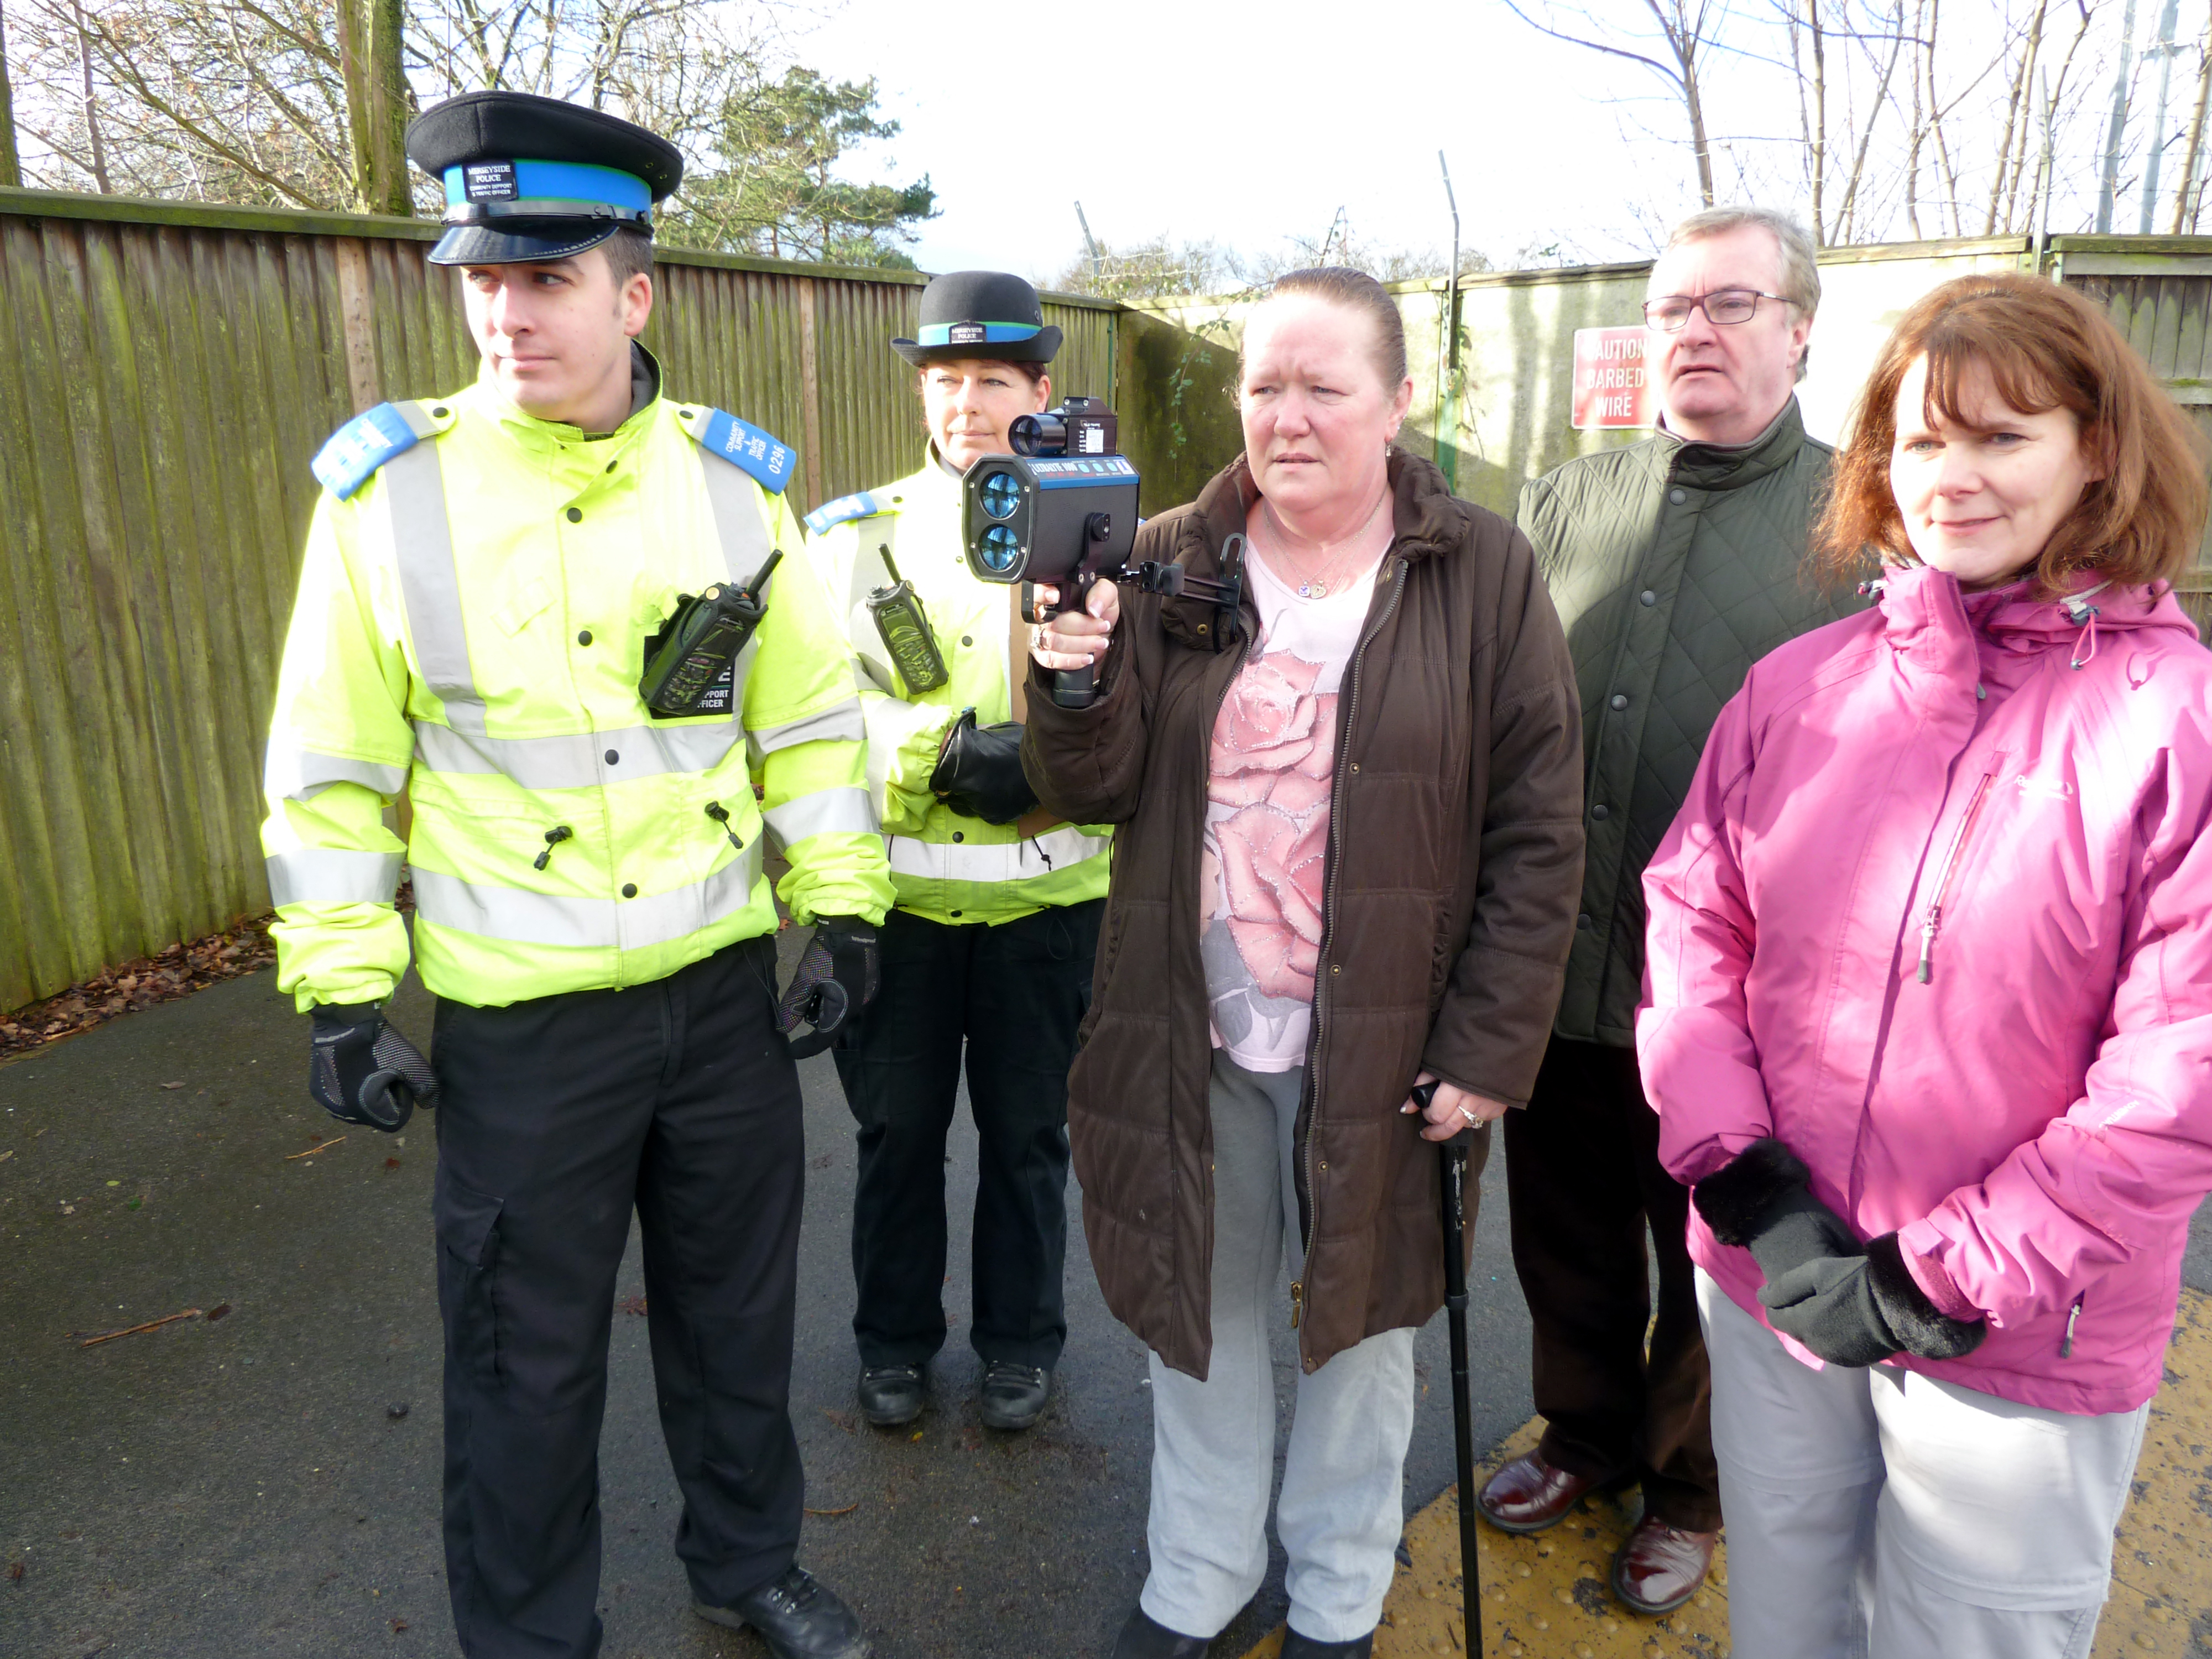 Patrick McKinley and Lynn Gatherer join the Speedwatch patrol